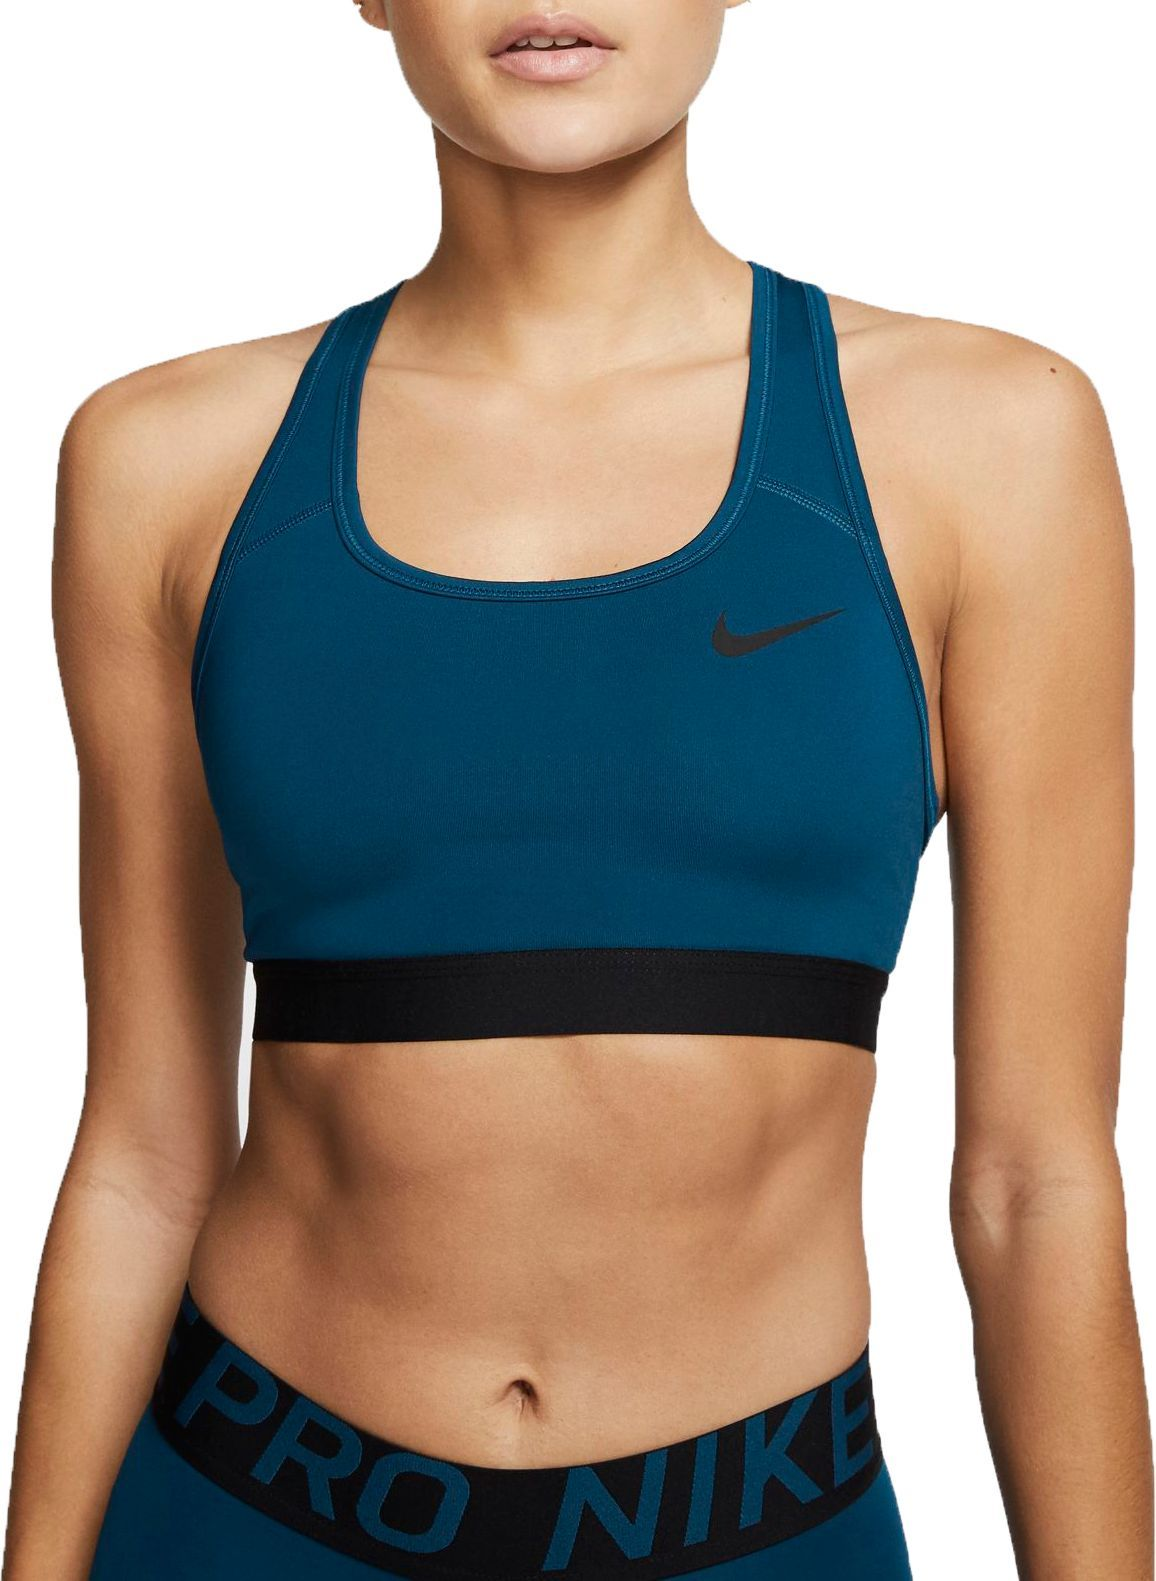 Fit Tight fit for a body-hugging feel Racerback design helps you move freely All-purpose compressive fit designed for all activities Technology Dri-FIT®: technology pulls sweat away from your skin to help you stay dry and comfortable Design Non-padded Nike Swoosh Sports Bra is made with compressive fabric for a supportive feel during medium-impact workouts Elastic underbust band